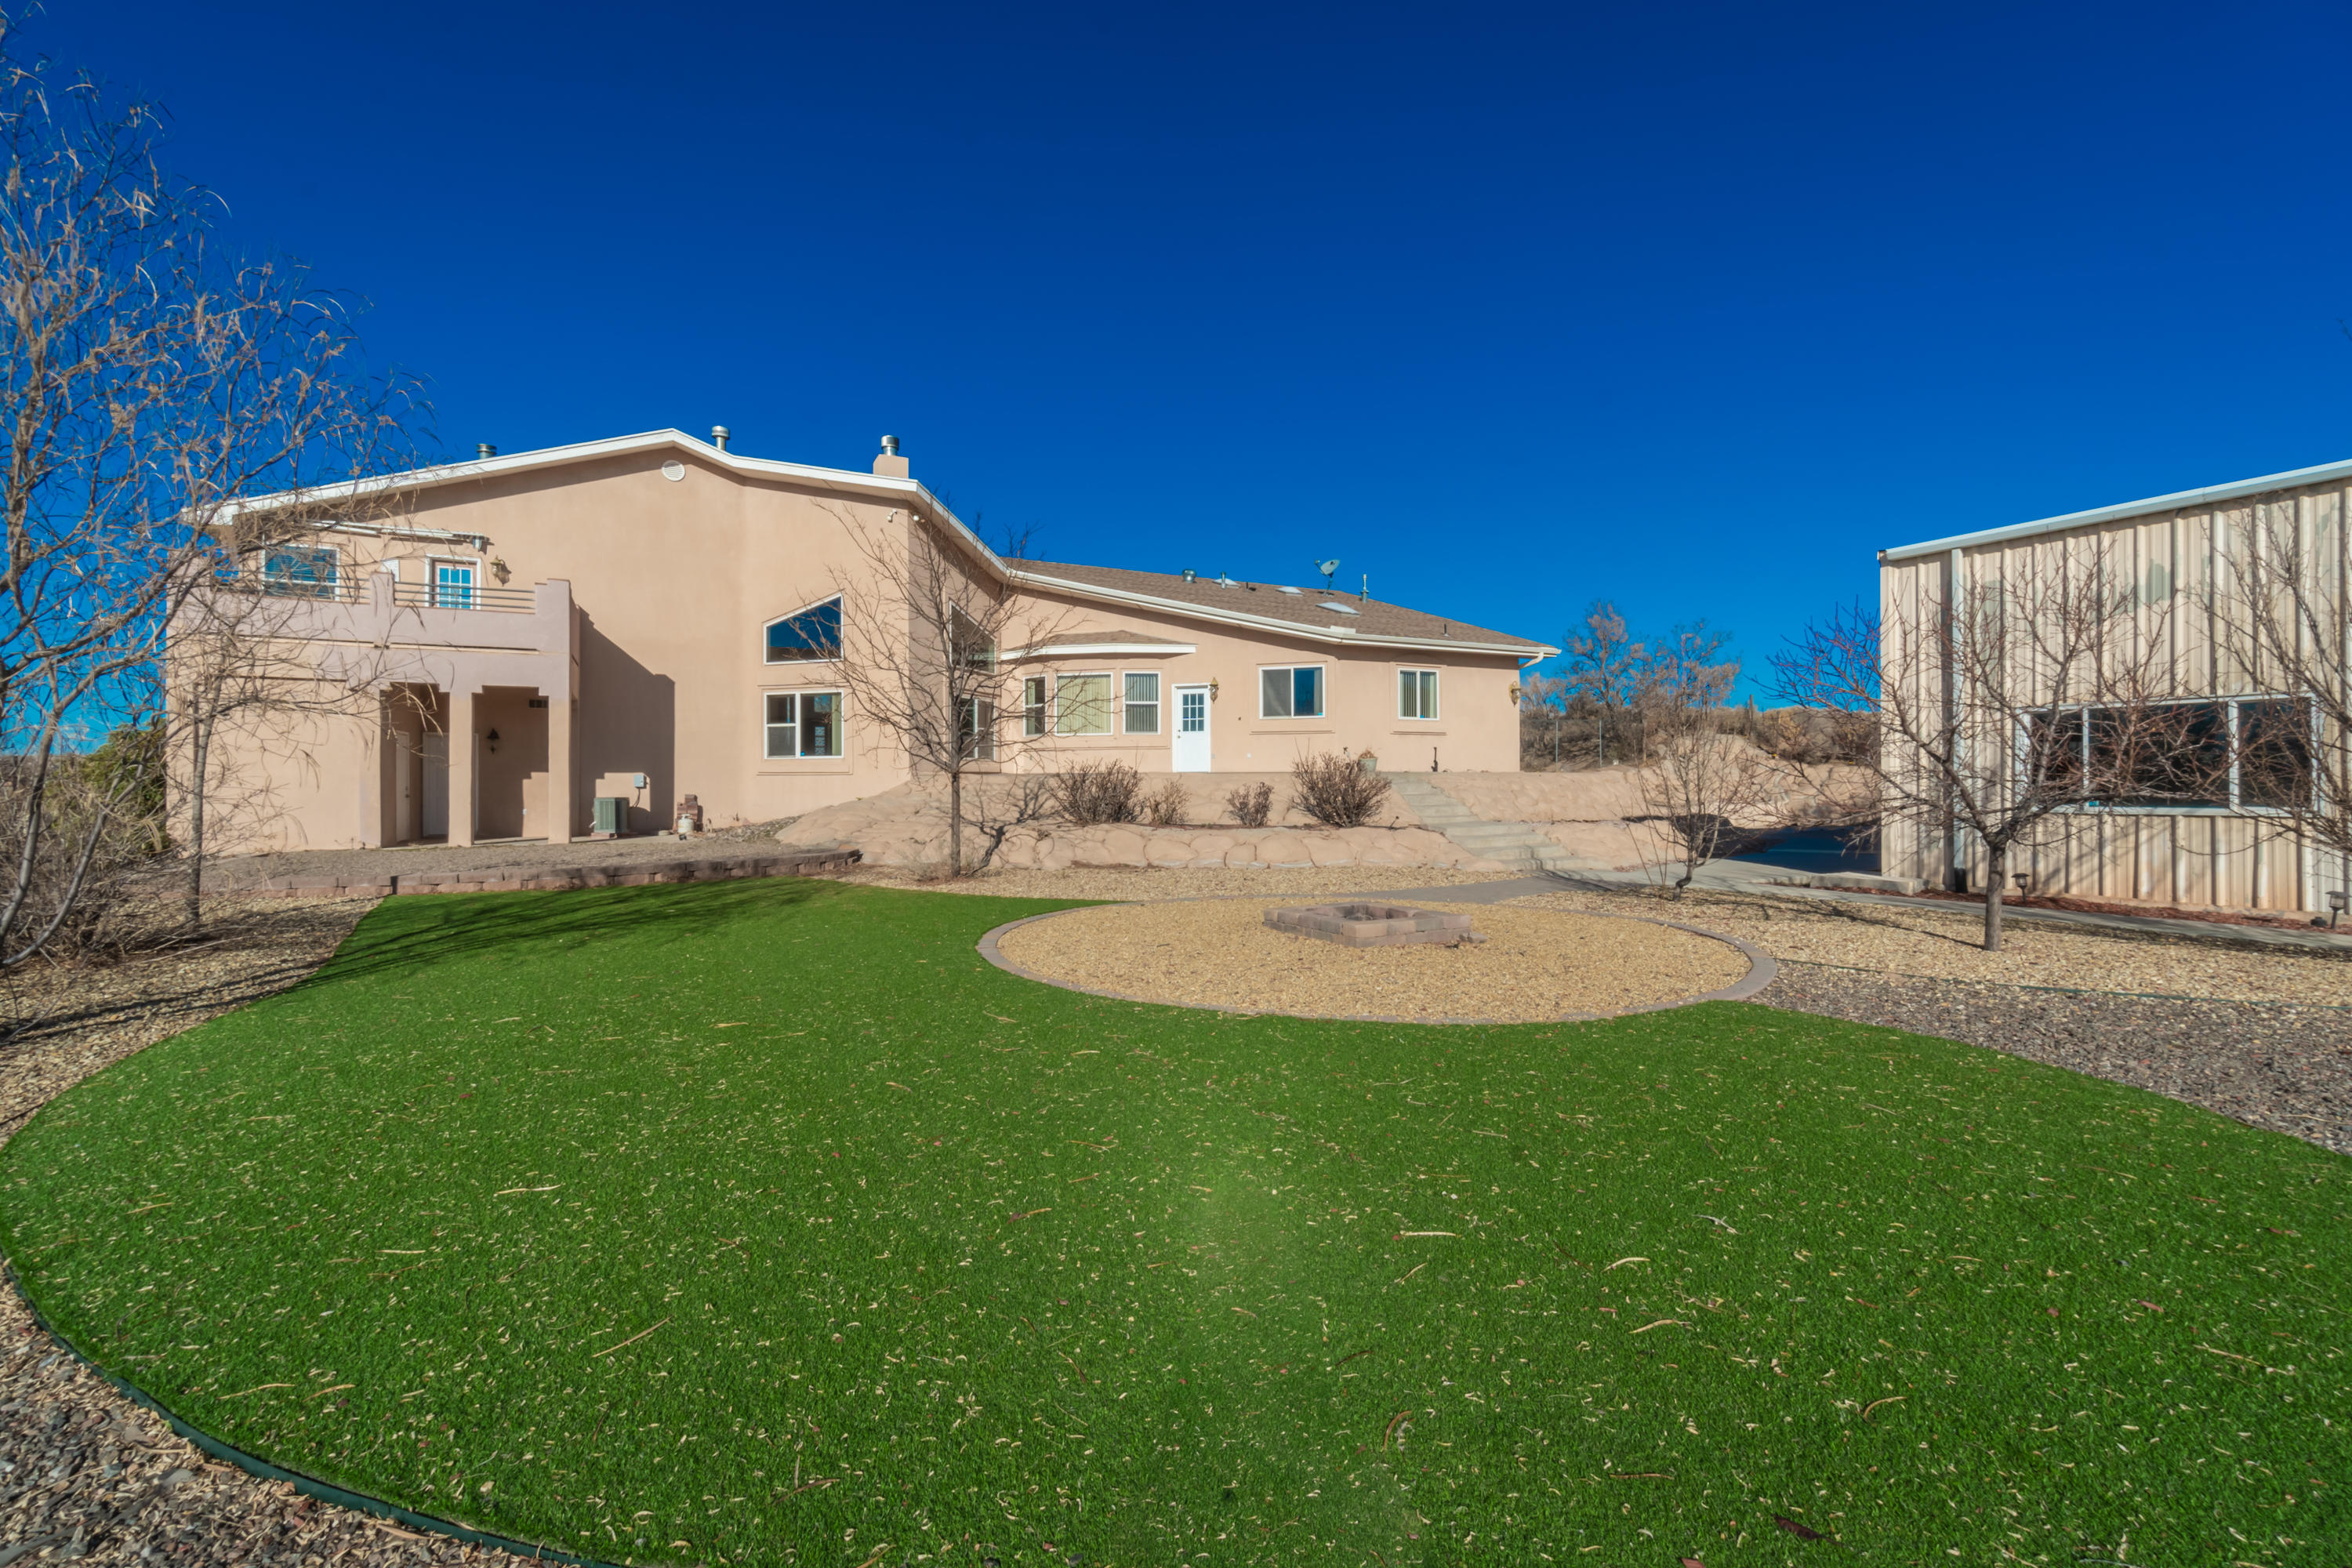 This fantastic 3194 sq ft custom built home is one of a kind! 4 bedrooms, 3 full bathrooms, and an office. The master bedroom boasts nearly 700 sq feet, double sided fireplace, and has a private balcony with a hot tub. Breathtaking views of the Sandia mountains. There is a nearly 6000 sq ft multi use commercial building sitting on a fully landscaped one-acre lot (with loading dock). The multi use building is finished with offices, living quarters, and bathrooms. This unique property offers endless possibilities to create a work/life balance.1 acre lot (MLS 986620) adjacent to the east of this property is willing to be sold as package deal with this listing.